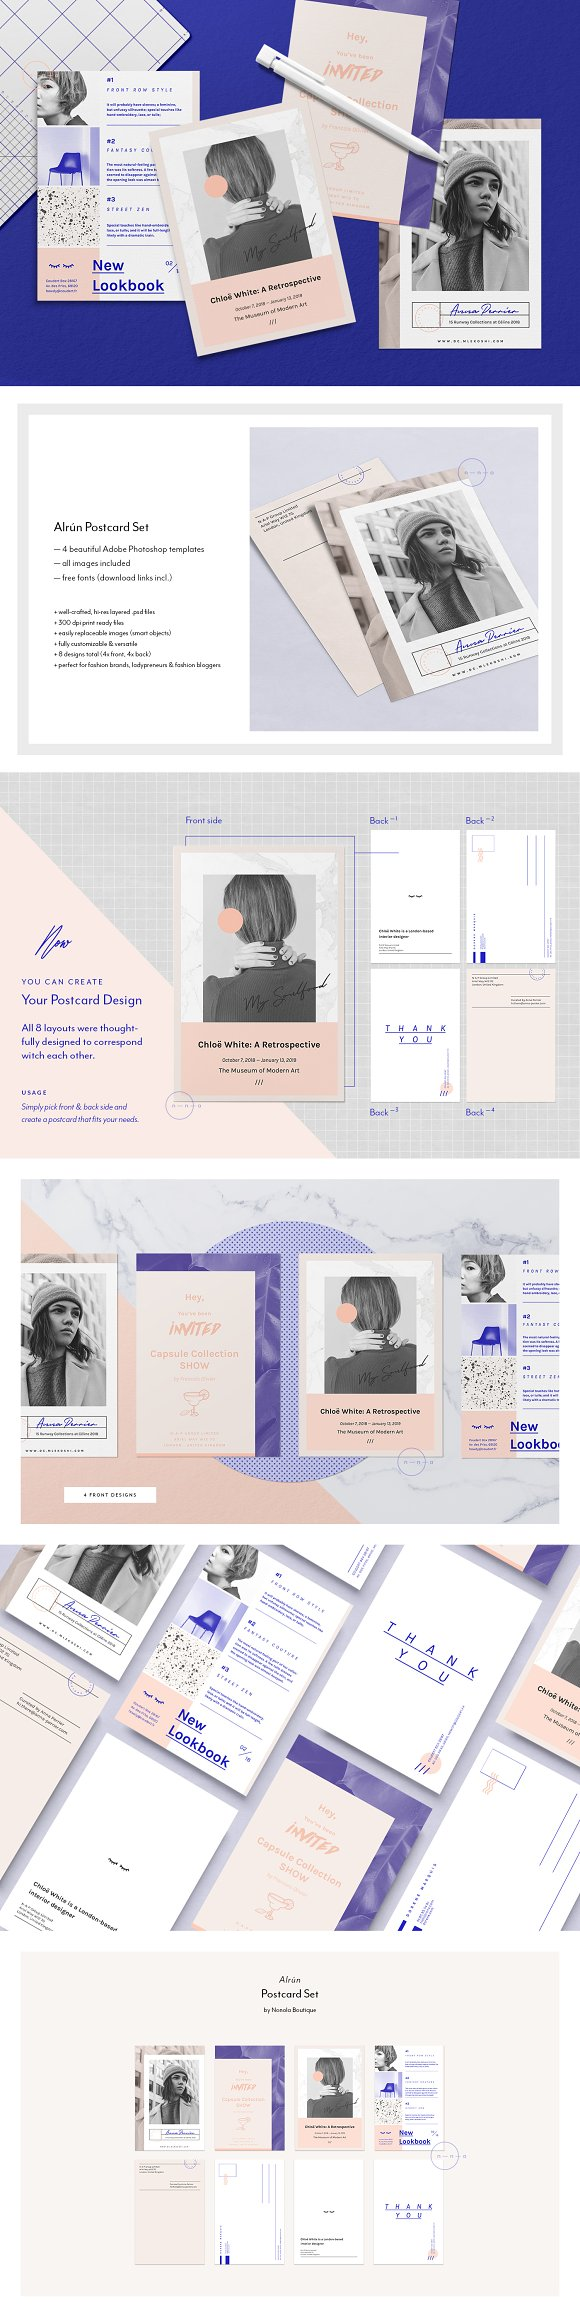 20 Customizable Postcard Templates for Travel-Inspired Designs ...